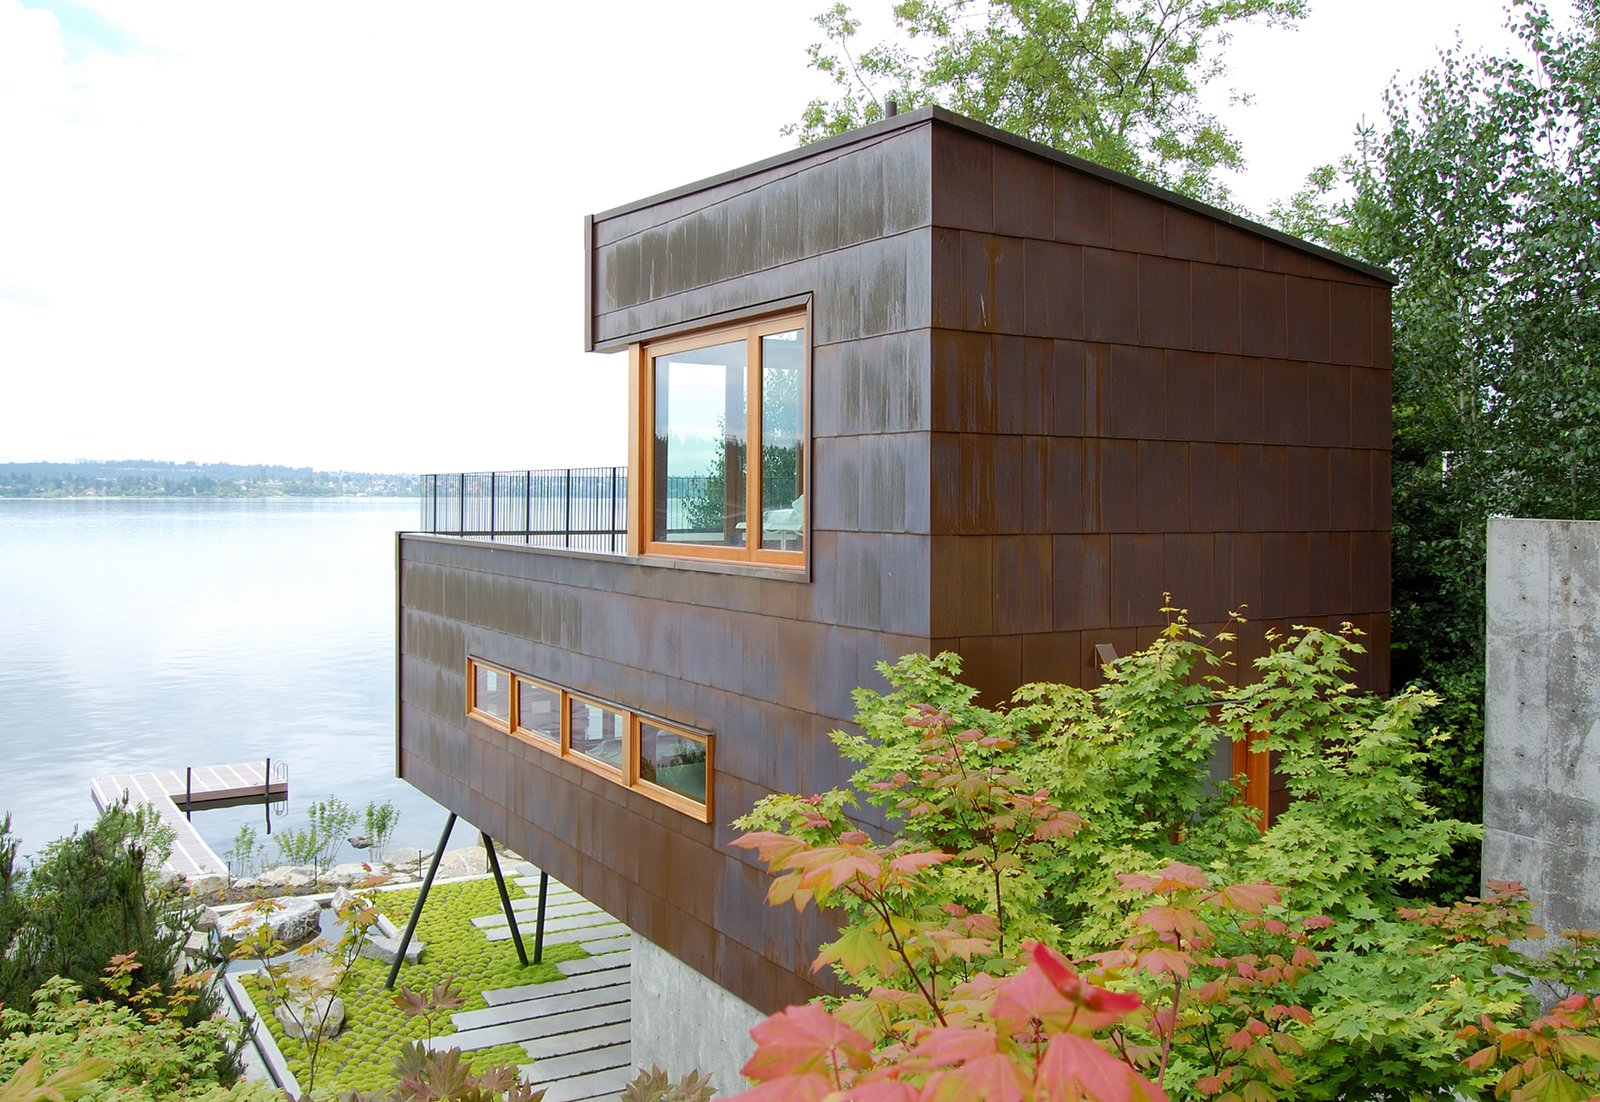 Tagged: Exterior and Metal Roof Material. Guest House on a Lake by Robert Hutchison Architecture